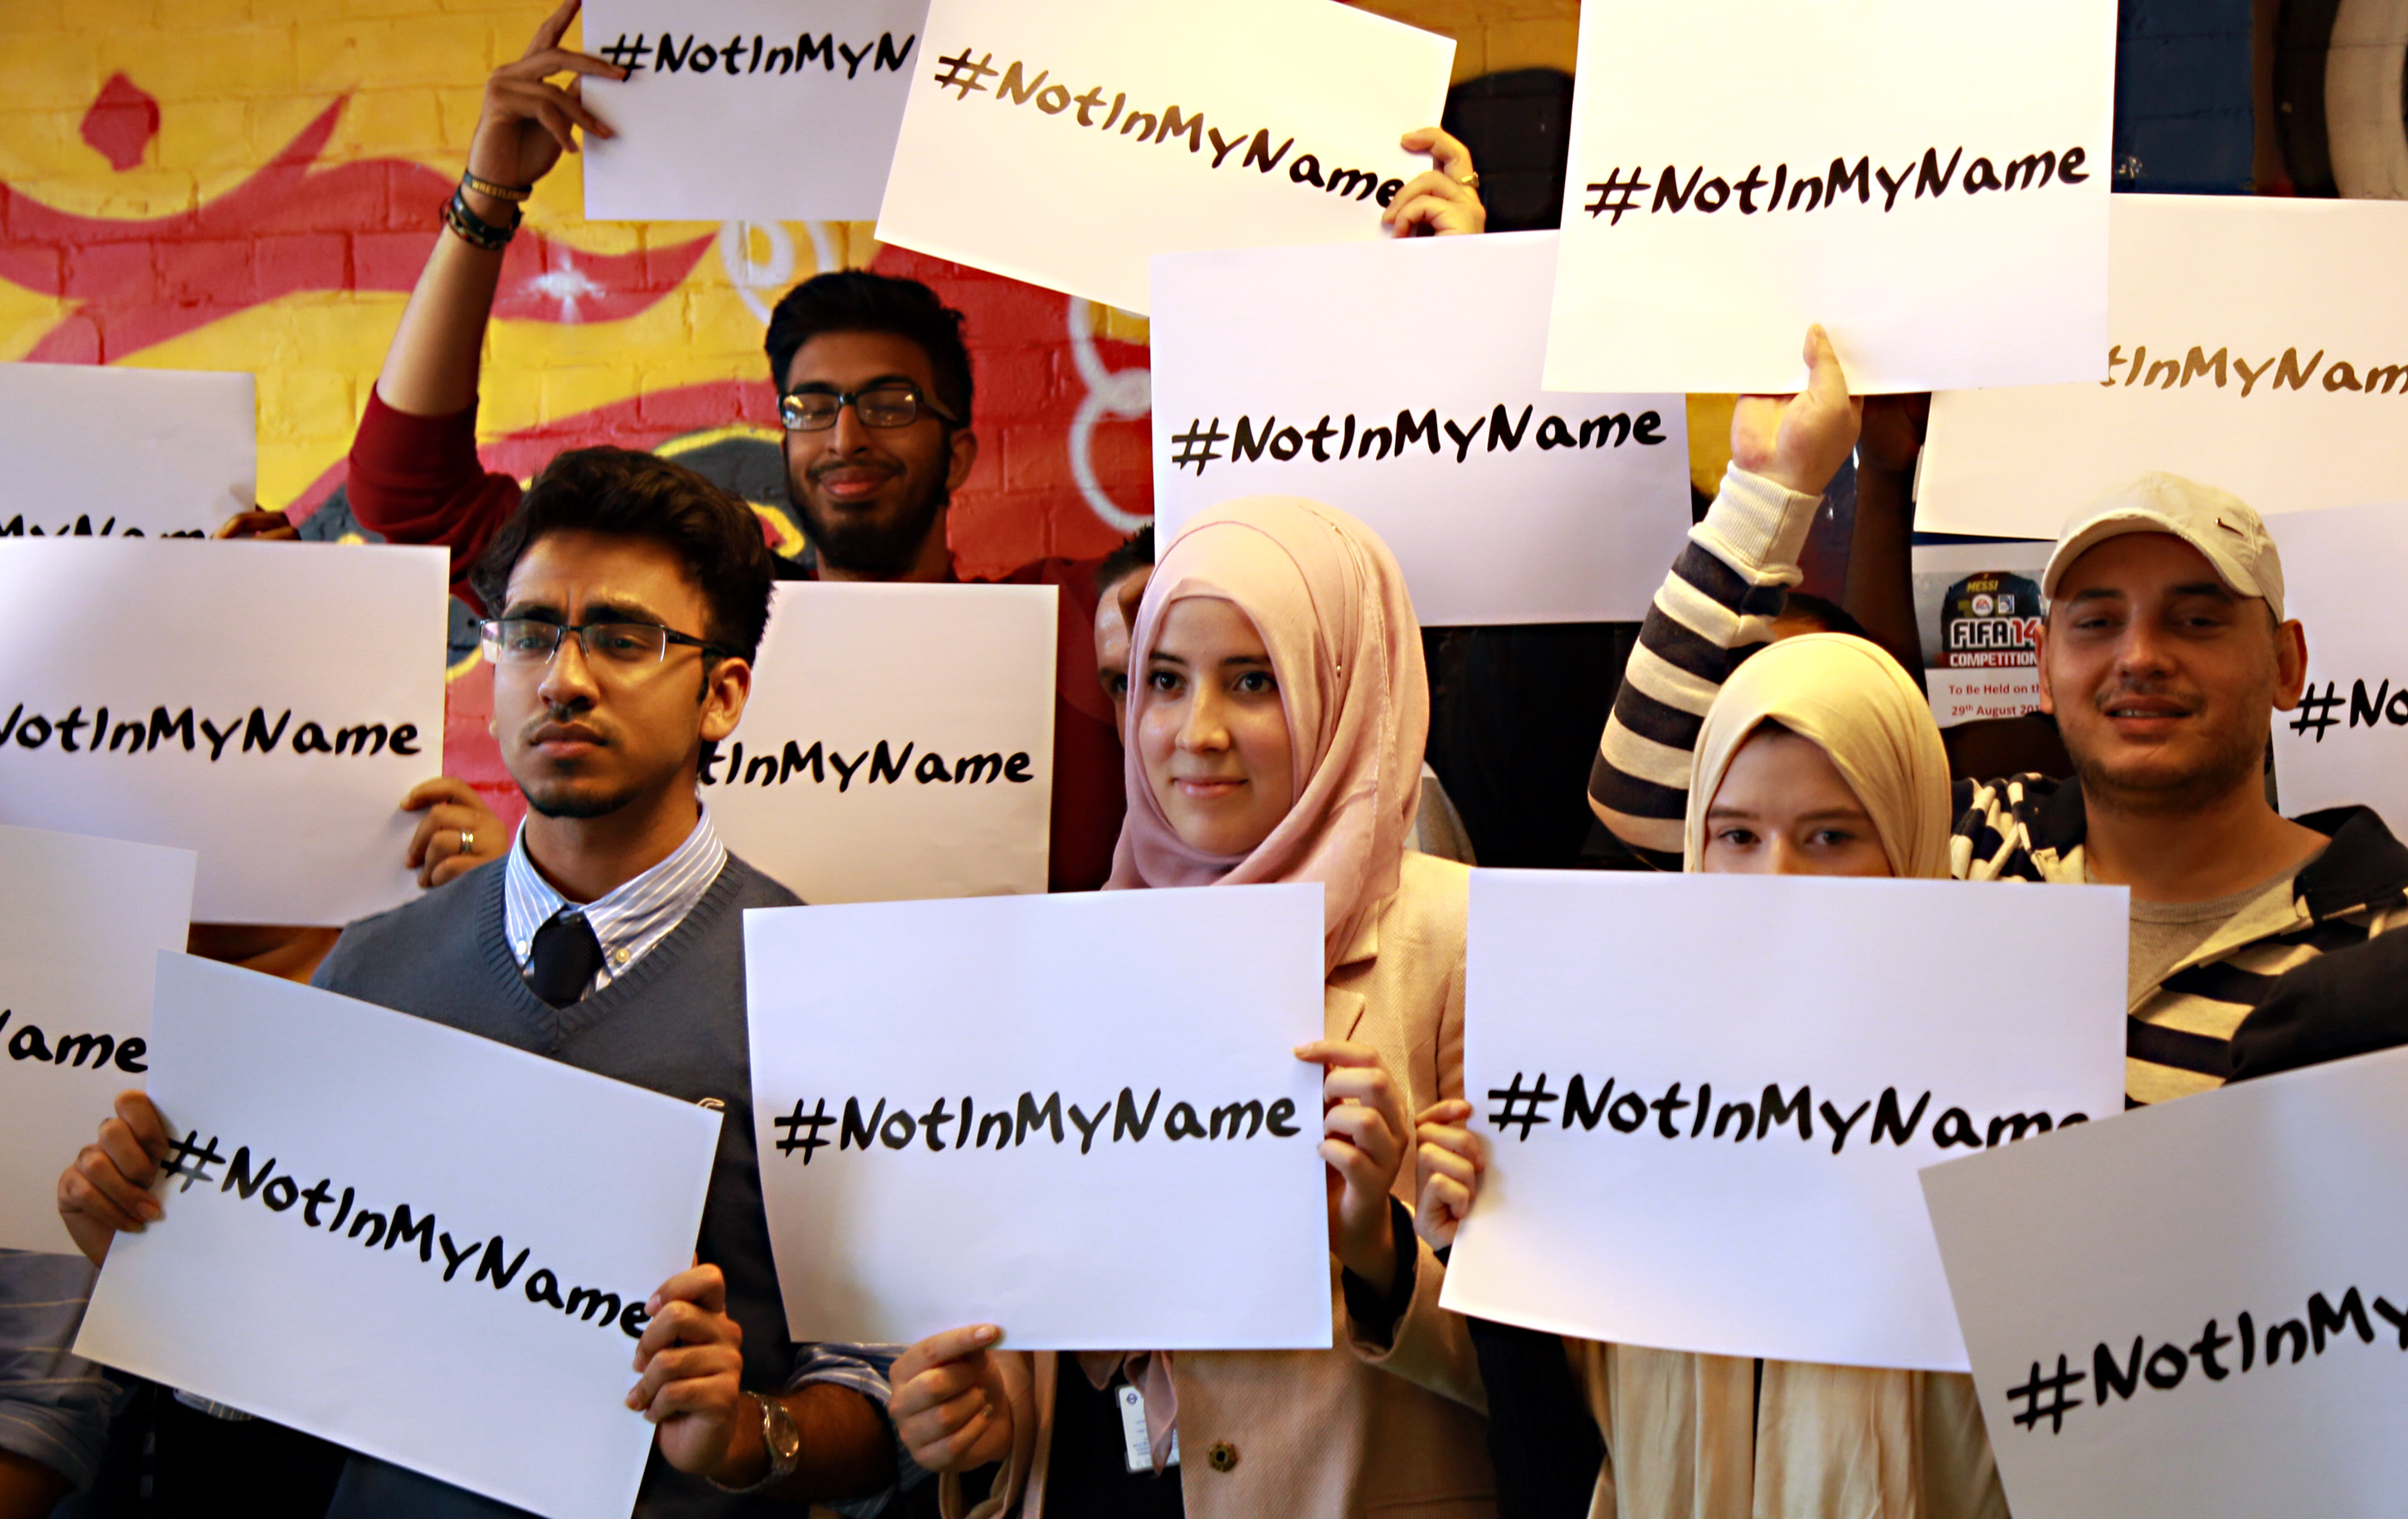 Not in my name: musulmani in piazza per dire no all'Is